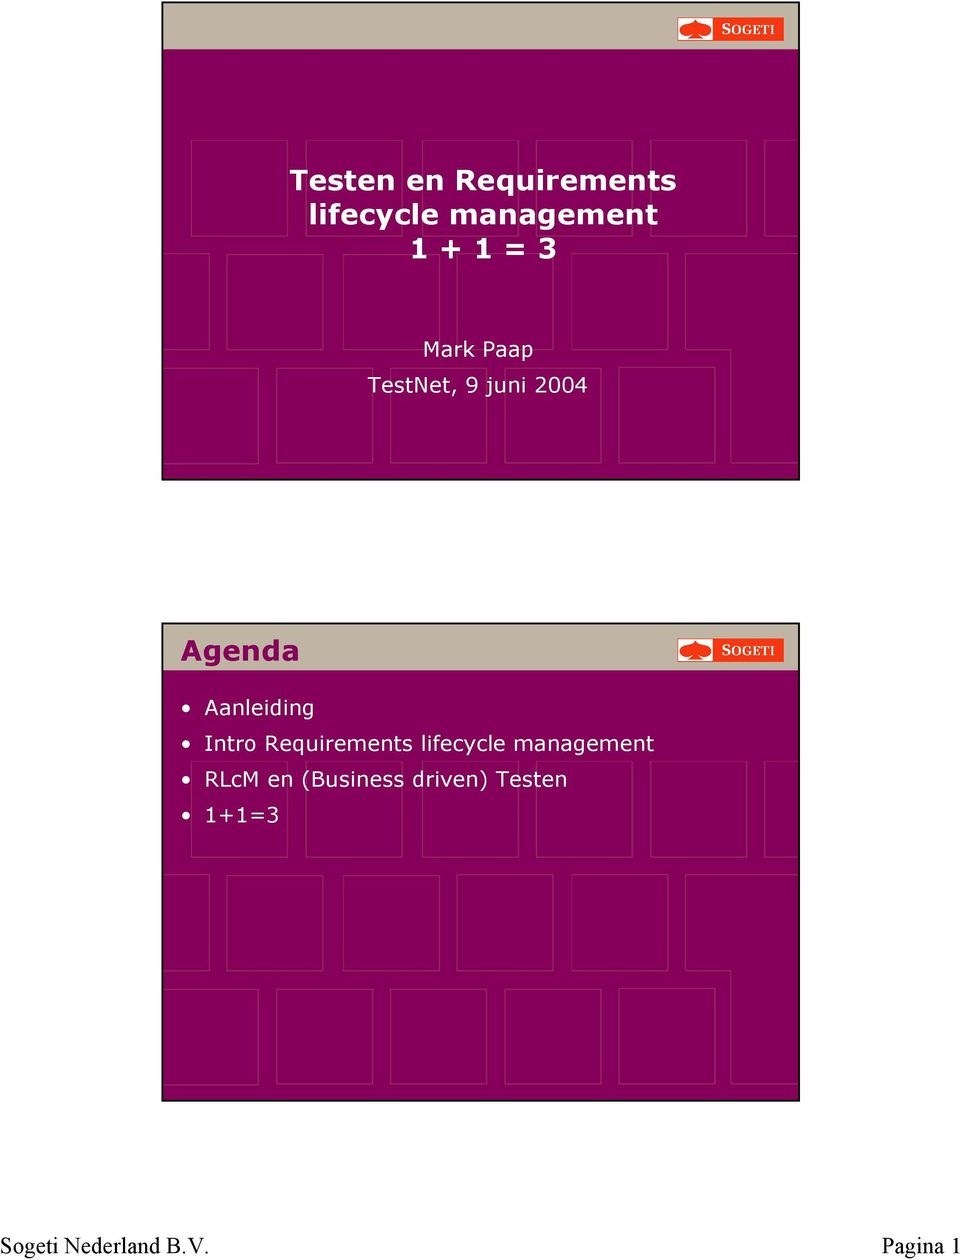 Itro Requiremets lifecycle maagemet RLcM e